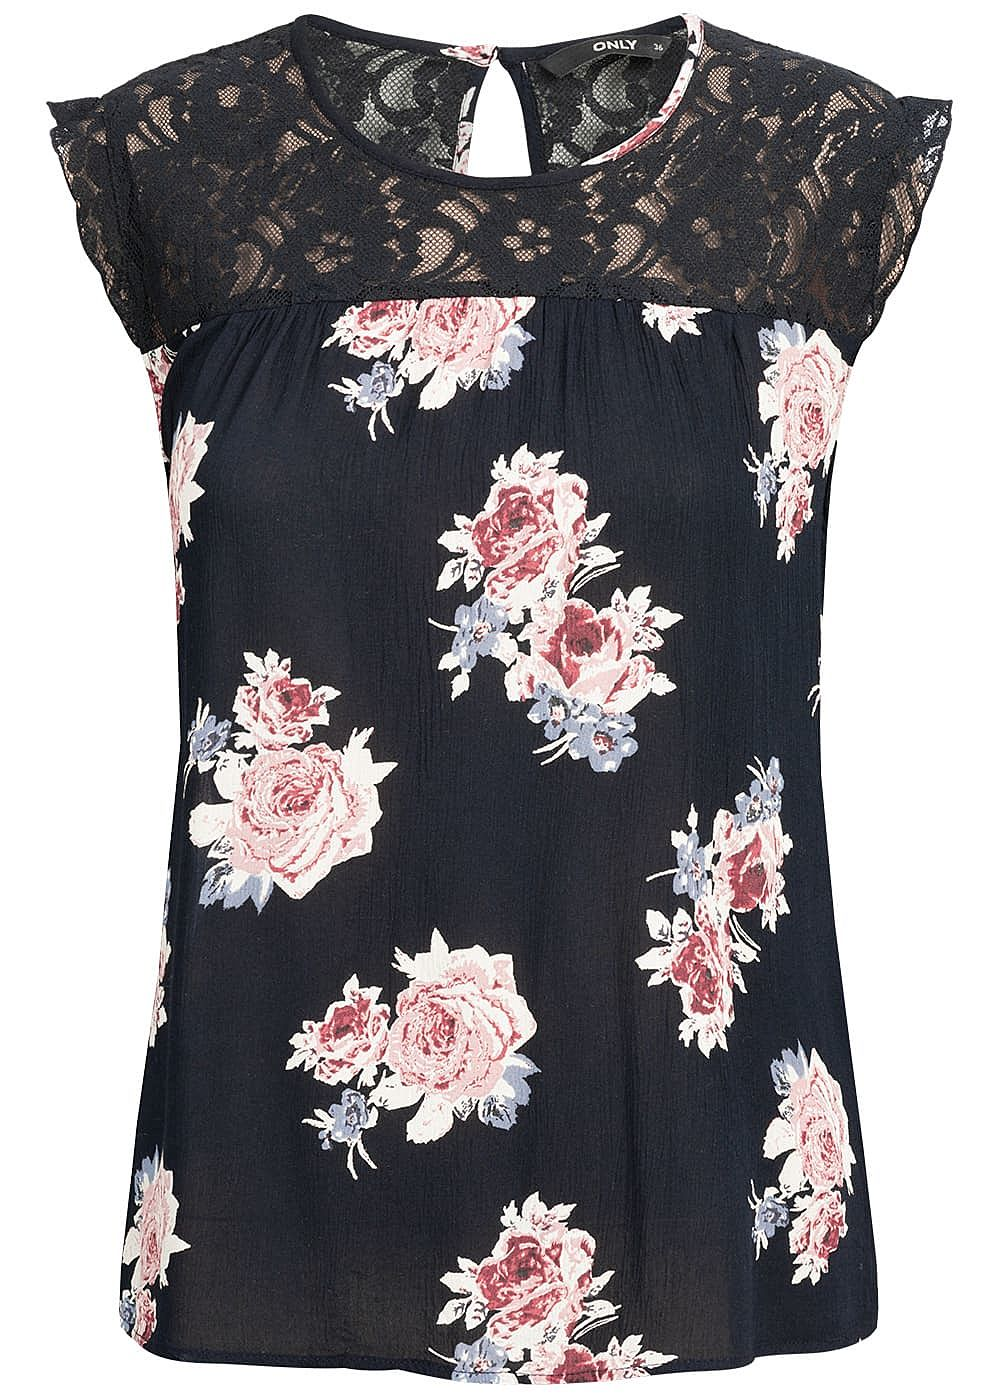 ONLY Damen Lace Top Flower Print NOOS night sky blau rosa - Art.-Nr.: 19030924-X34-NY